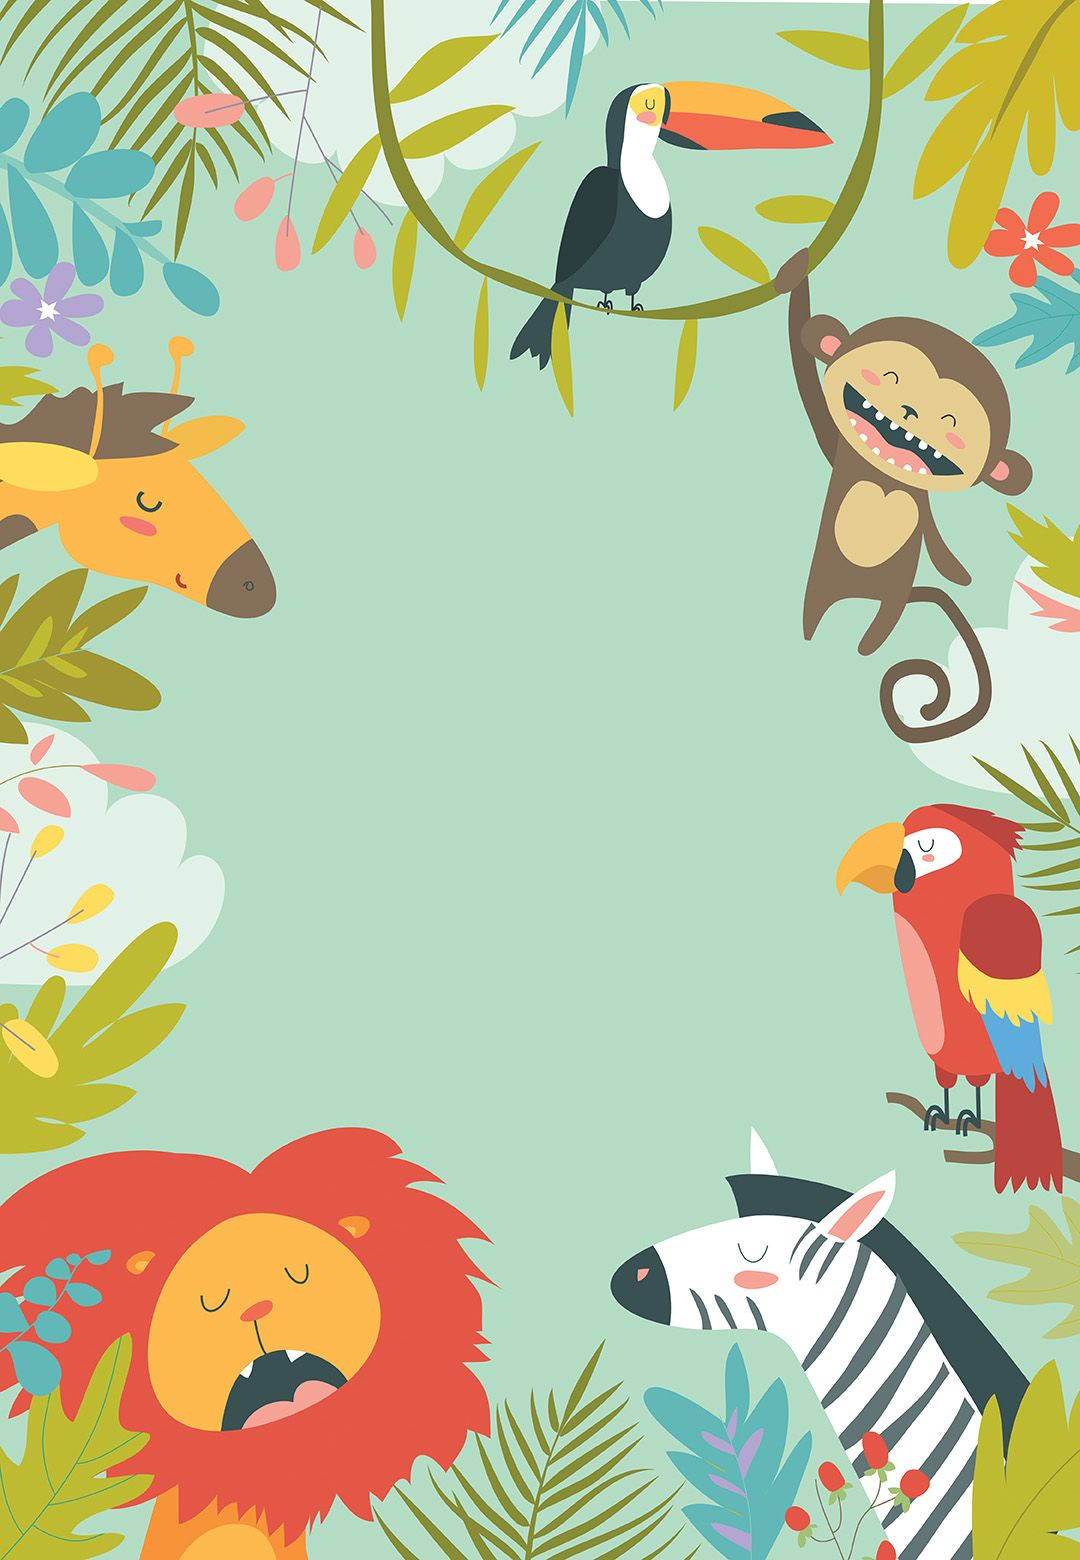 Arte Naif Slideshare Wild Animals Free Birthday Invitation Template Greetings